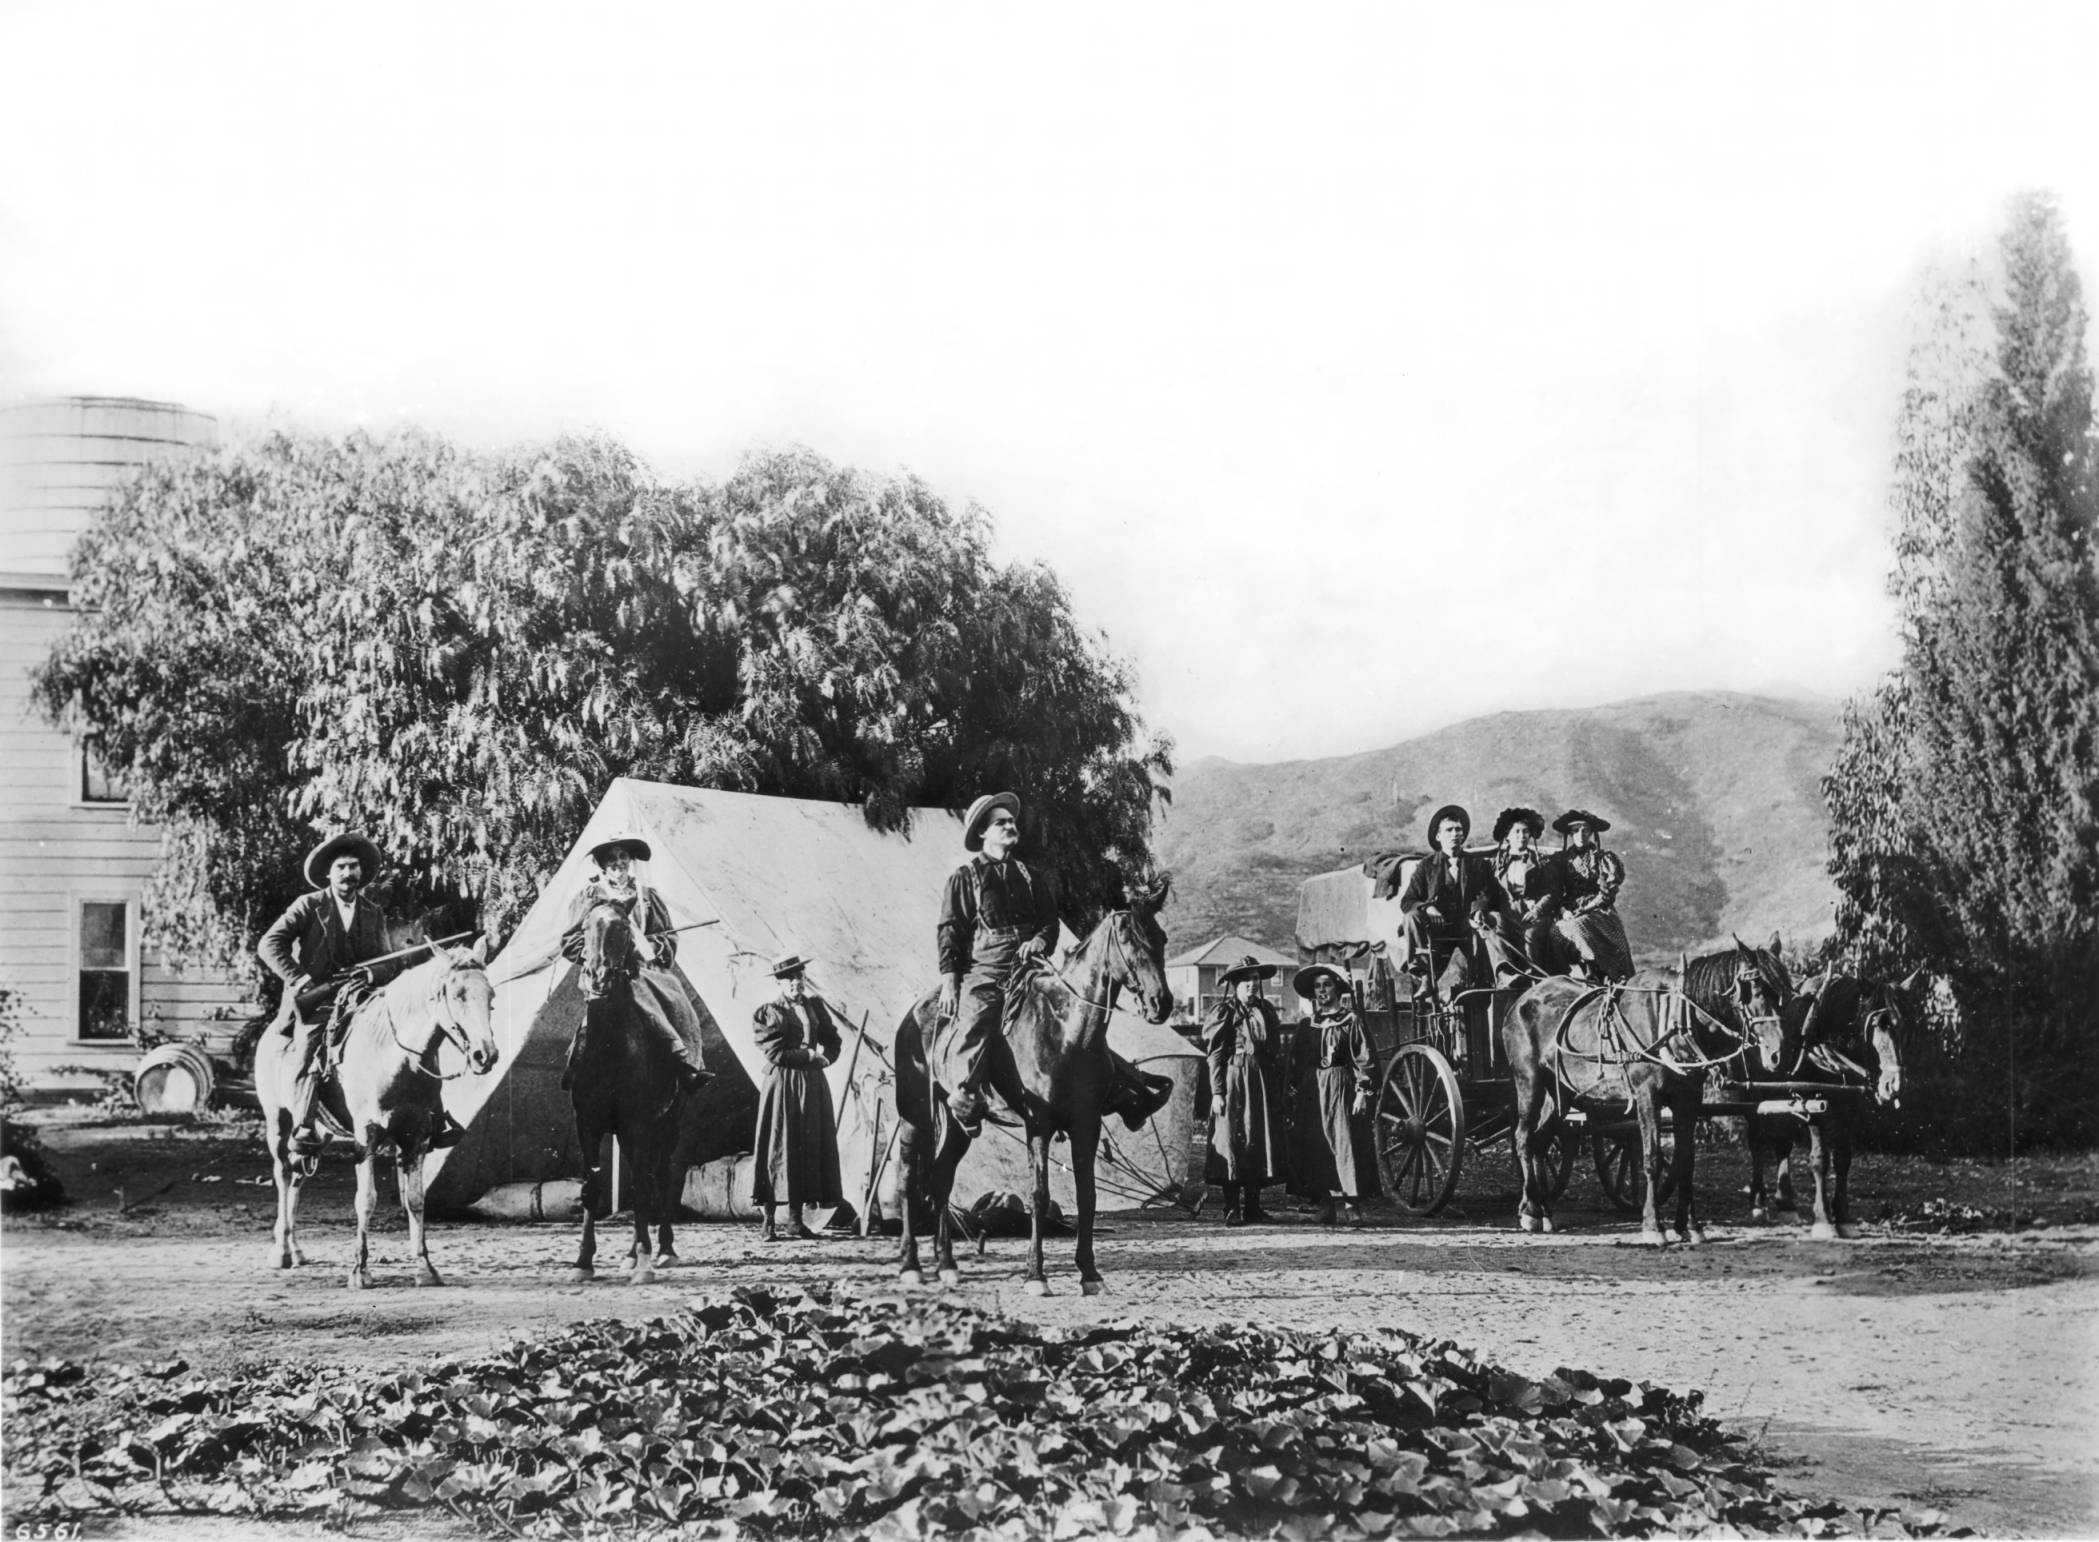 Group of campers on Franklin Avenue near Bronson Street, Hollywood, California, ca.1905